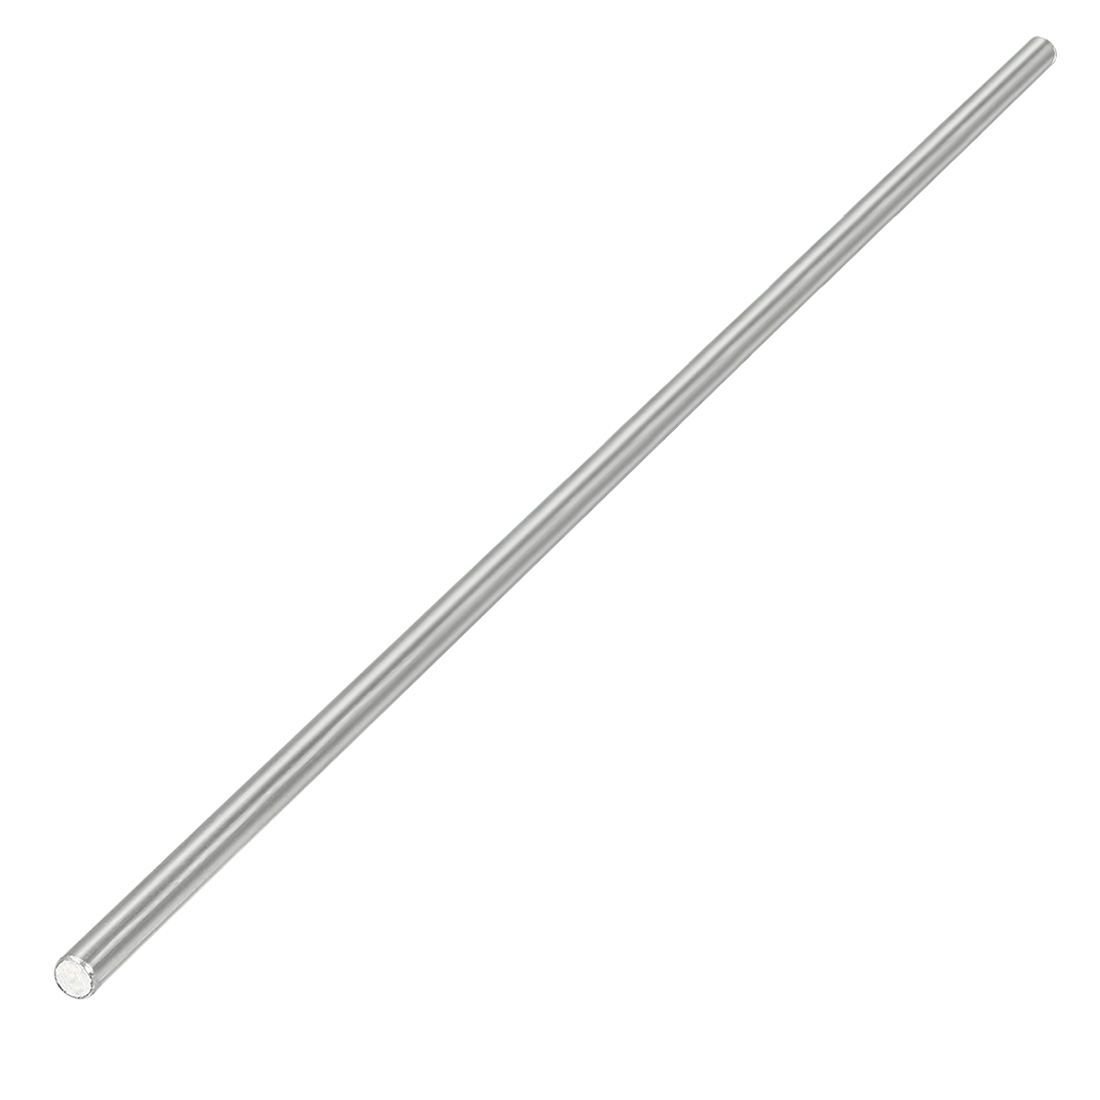 2.5mm Dia 180mm Length Stainless Steel Solid Round Shaft Rod for RC Model Toy